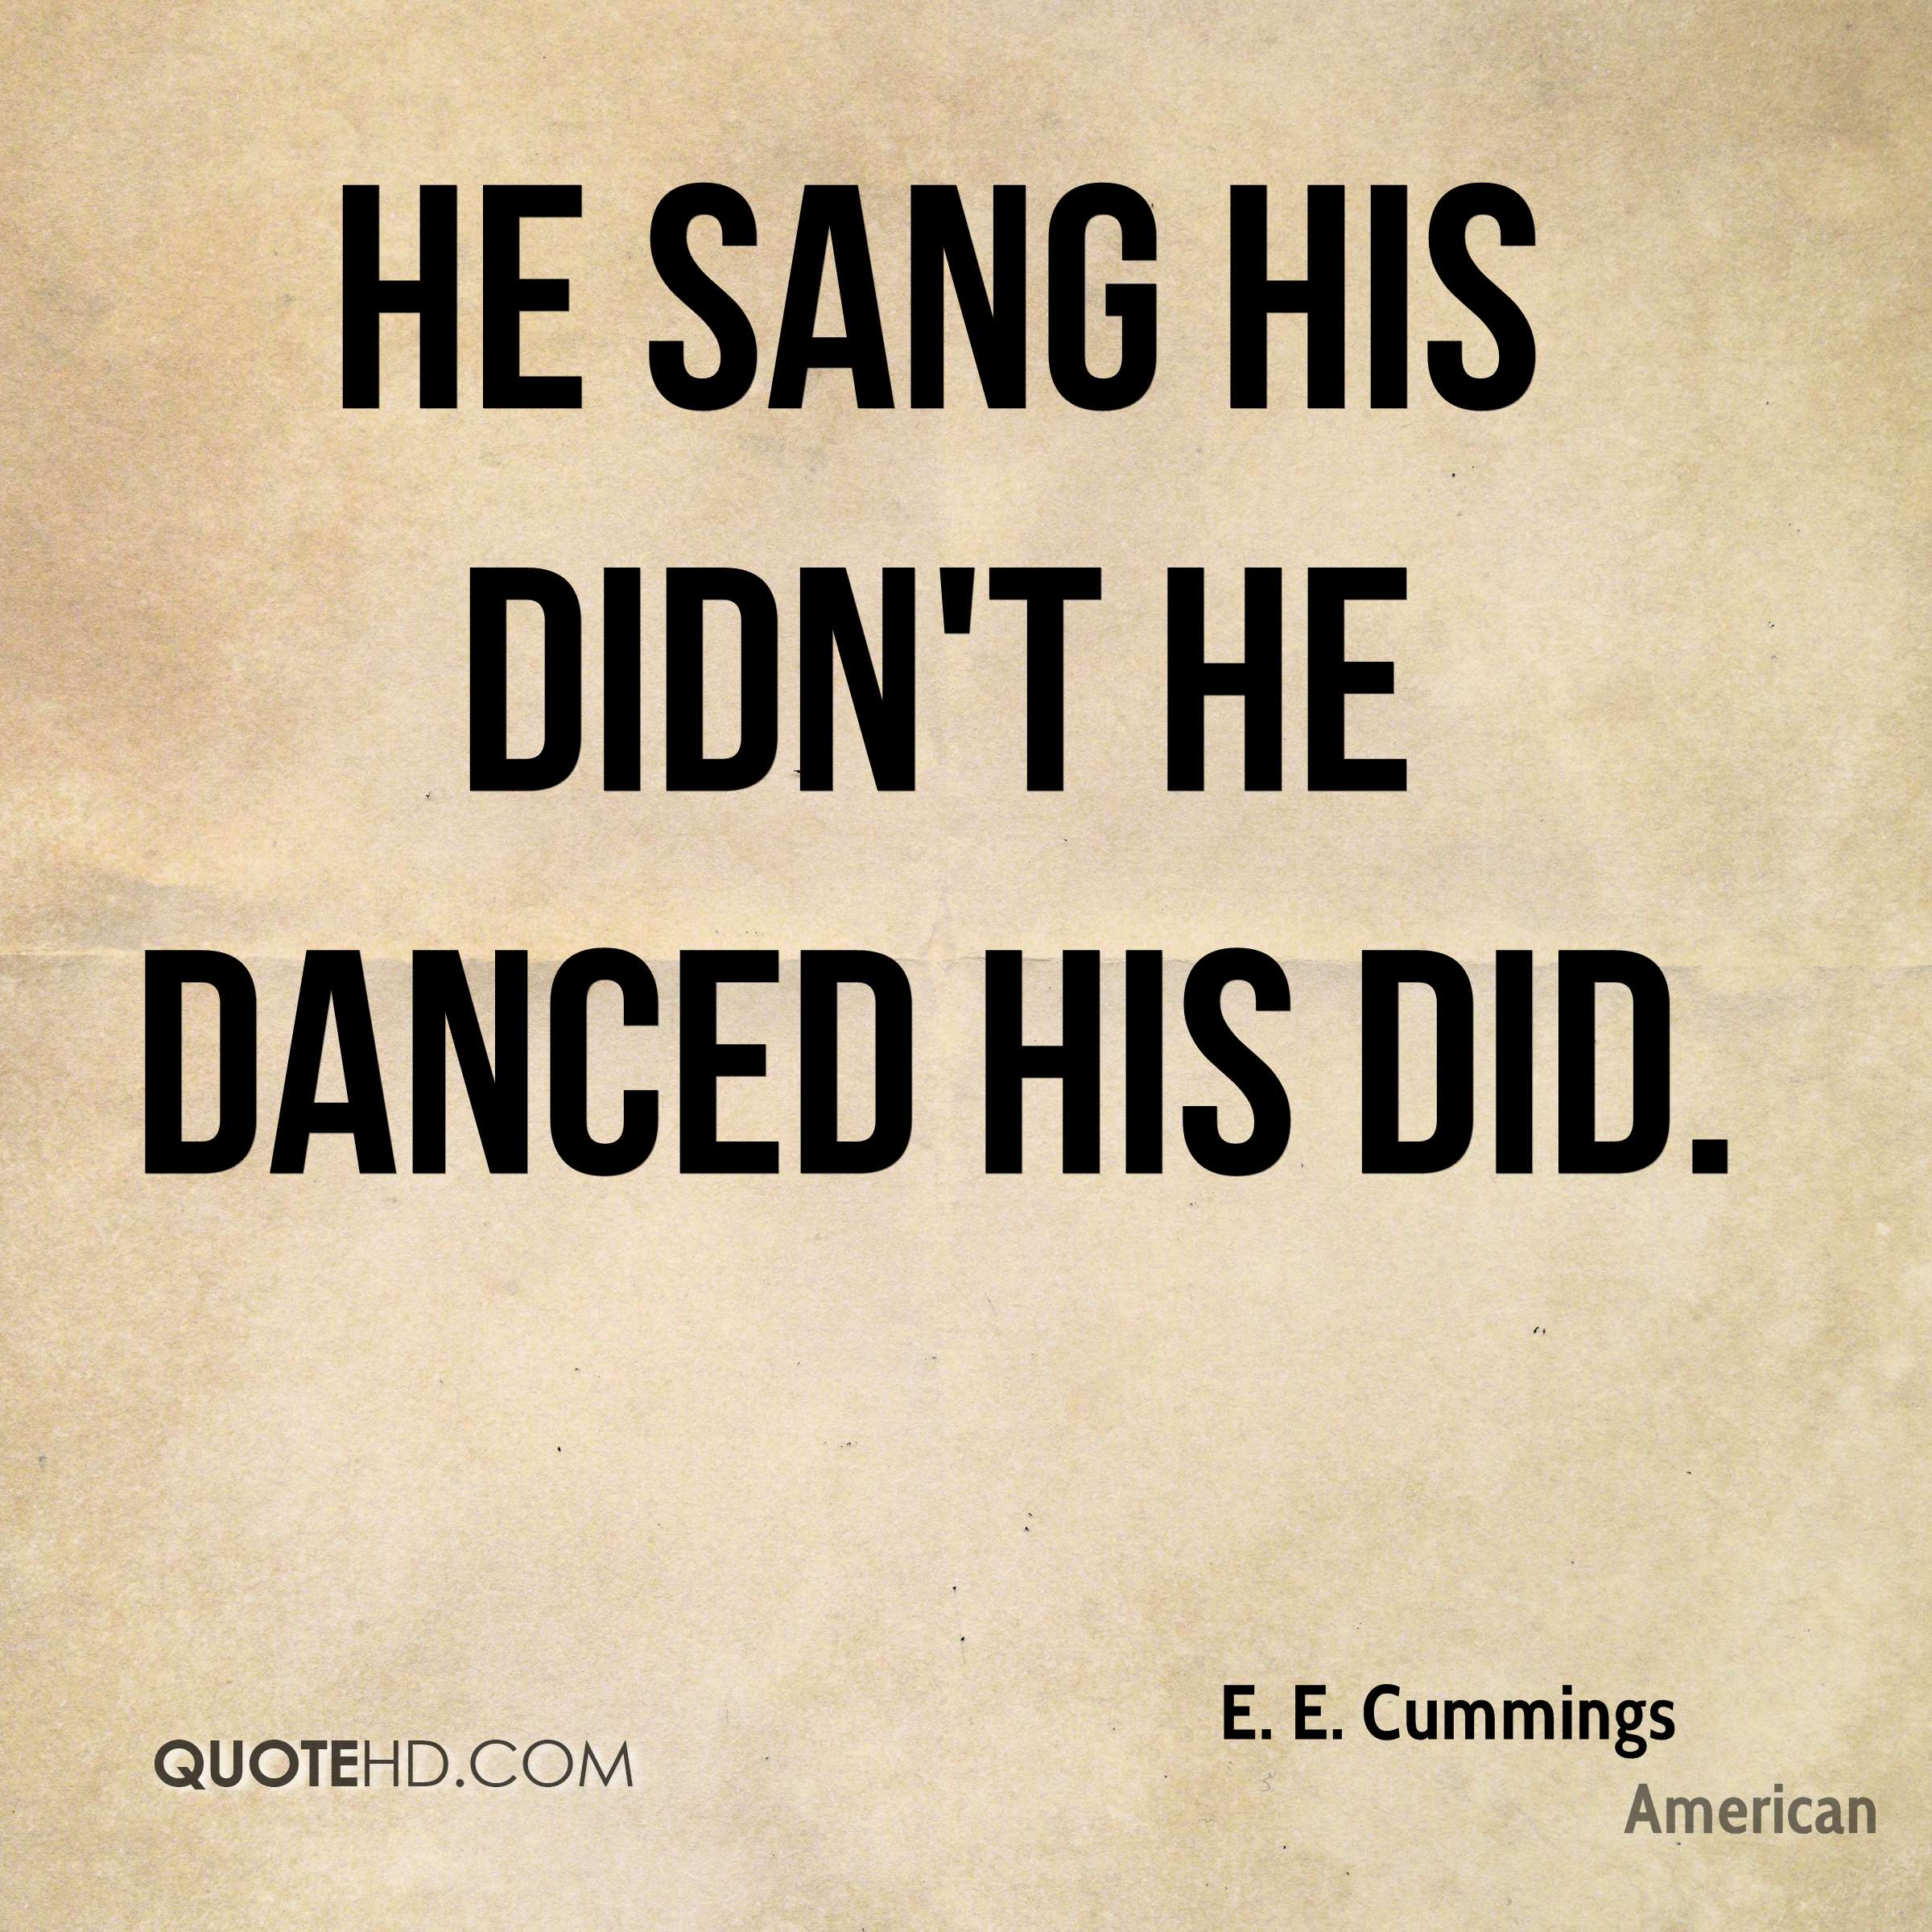 he sang his didn't he danced his did.